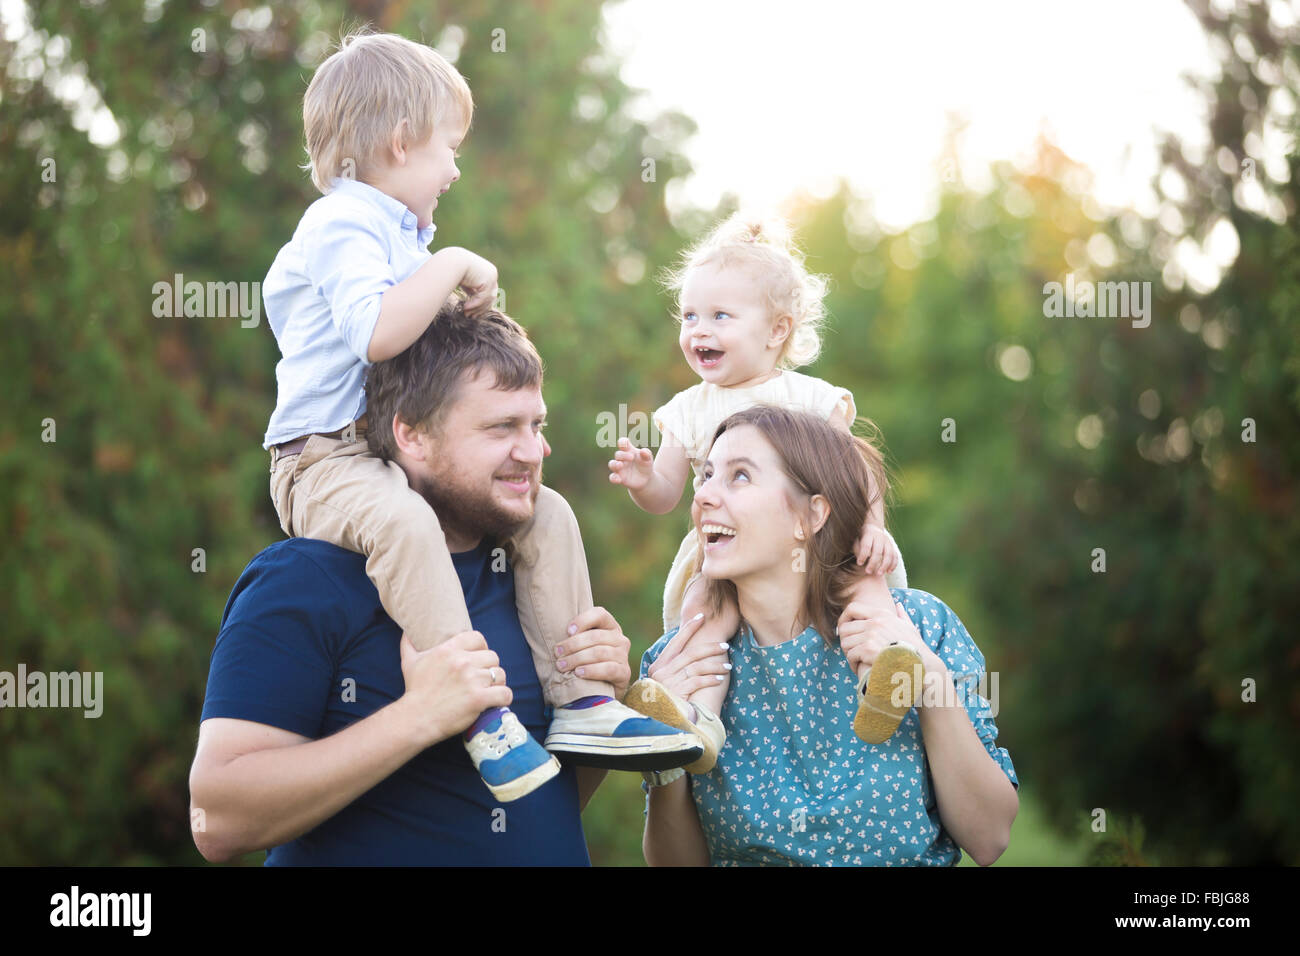 Portrait of happy family of four walking in park en été. Maman et papa transportant deux petits enfants Photo Stock